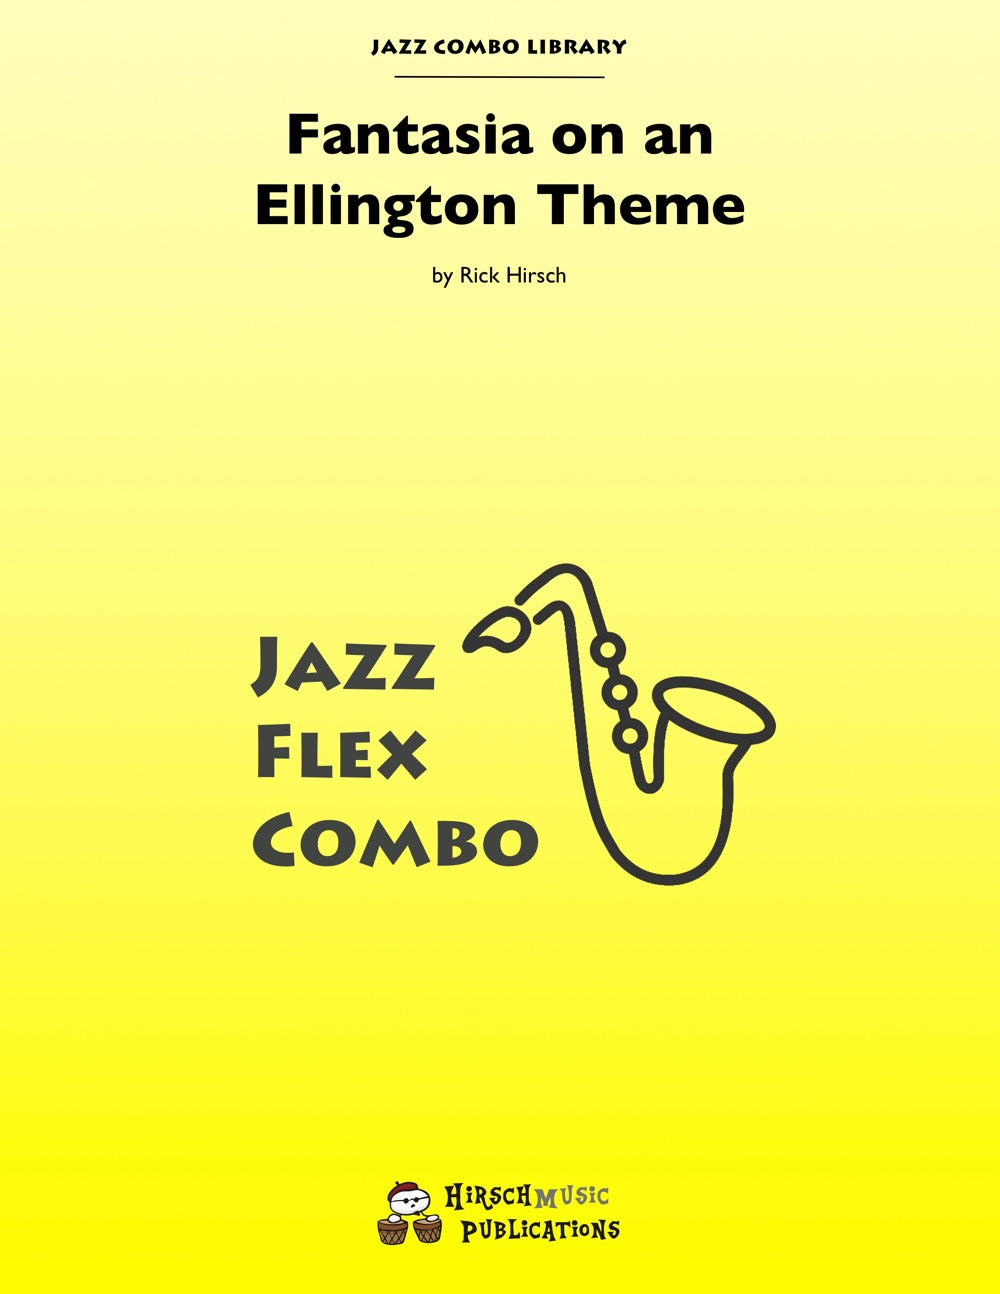 Fantasia on an Ellington Theme